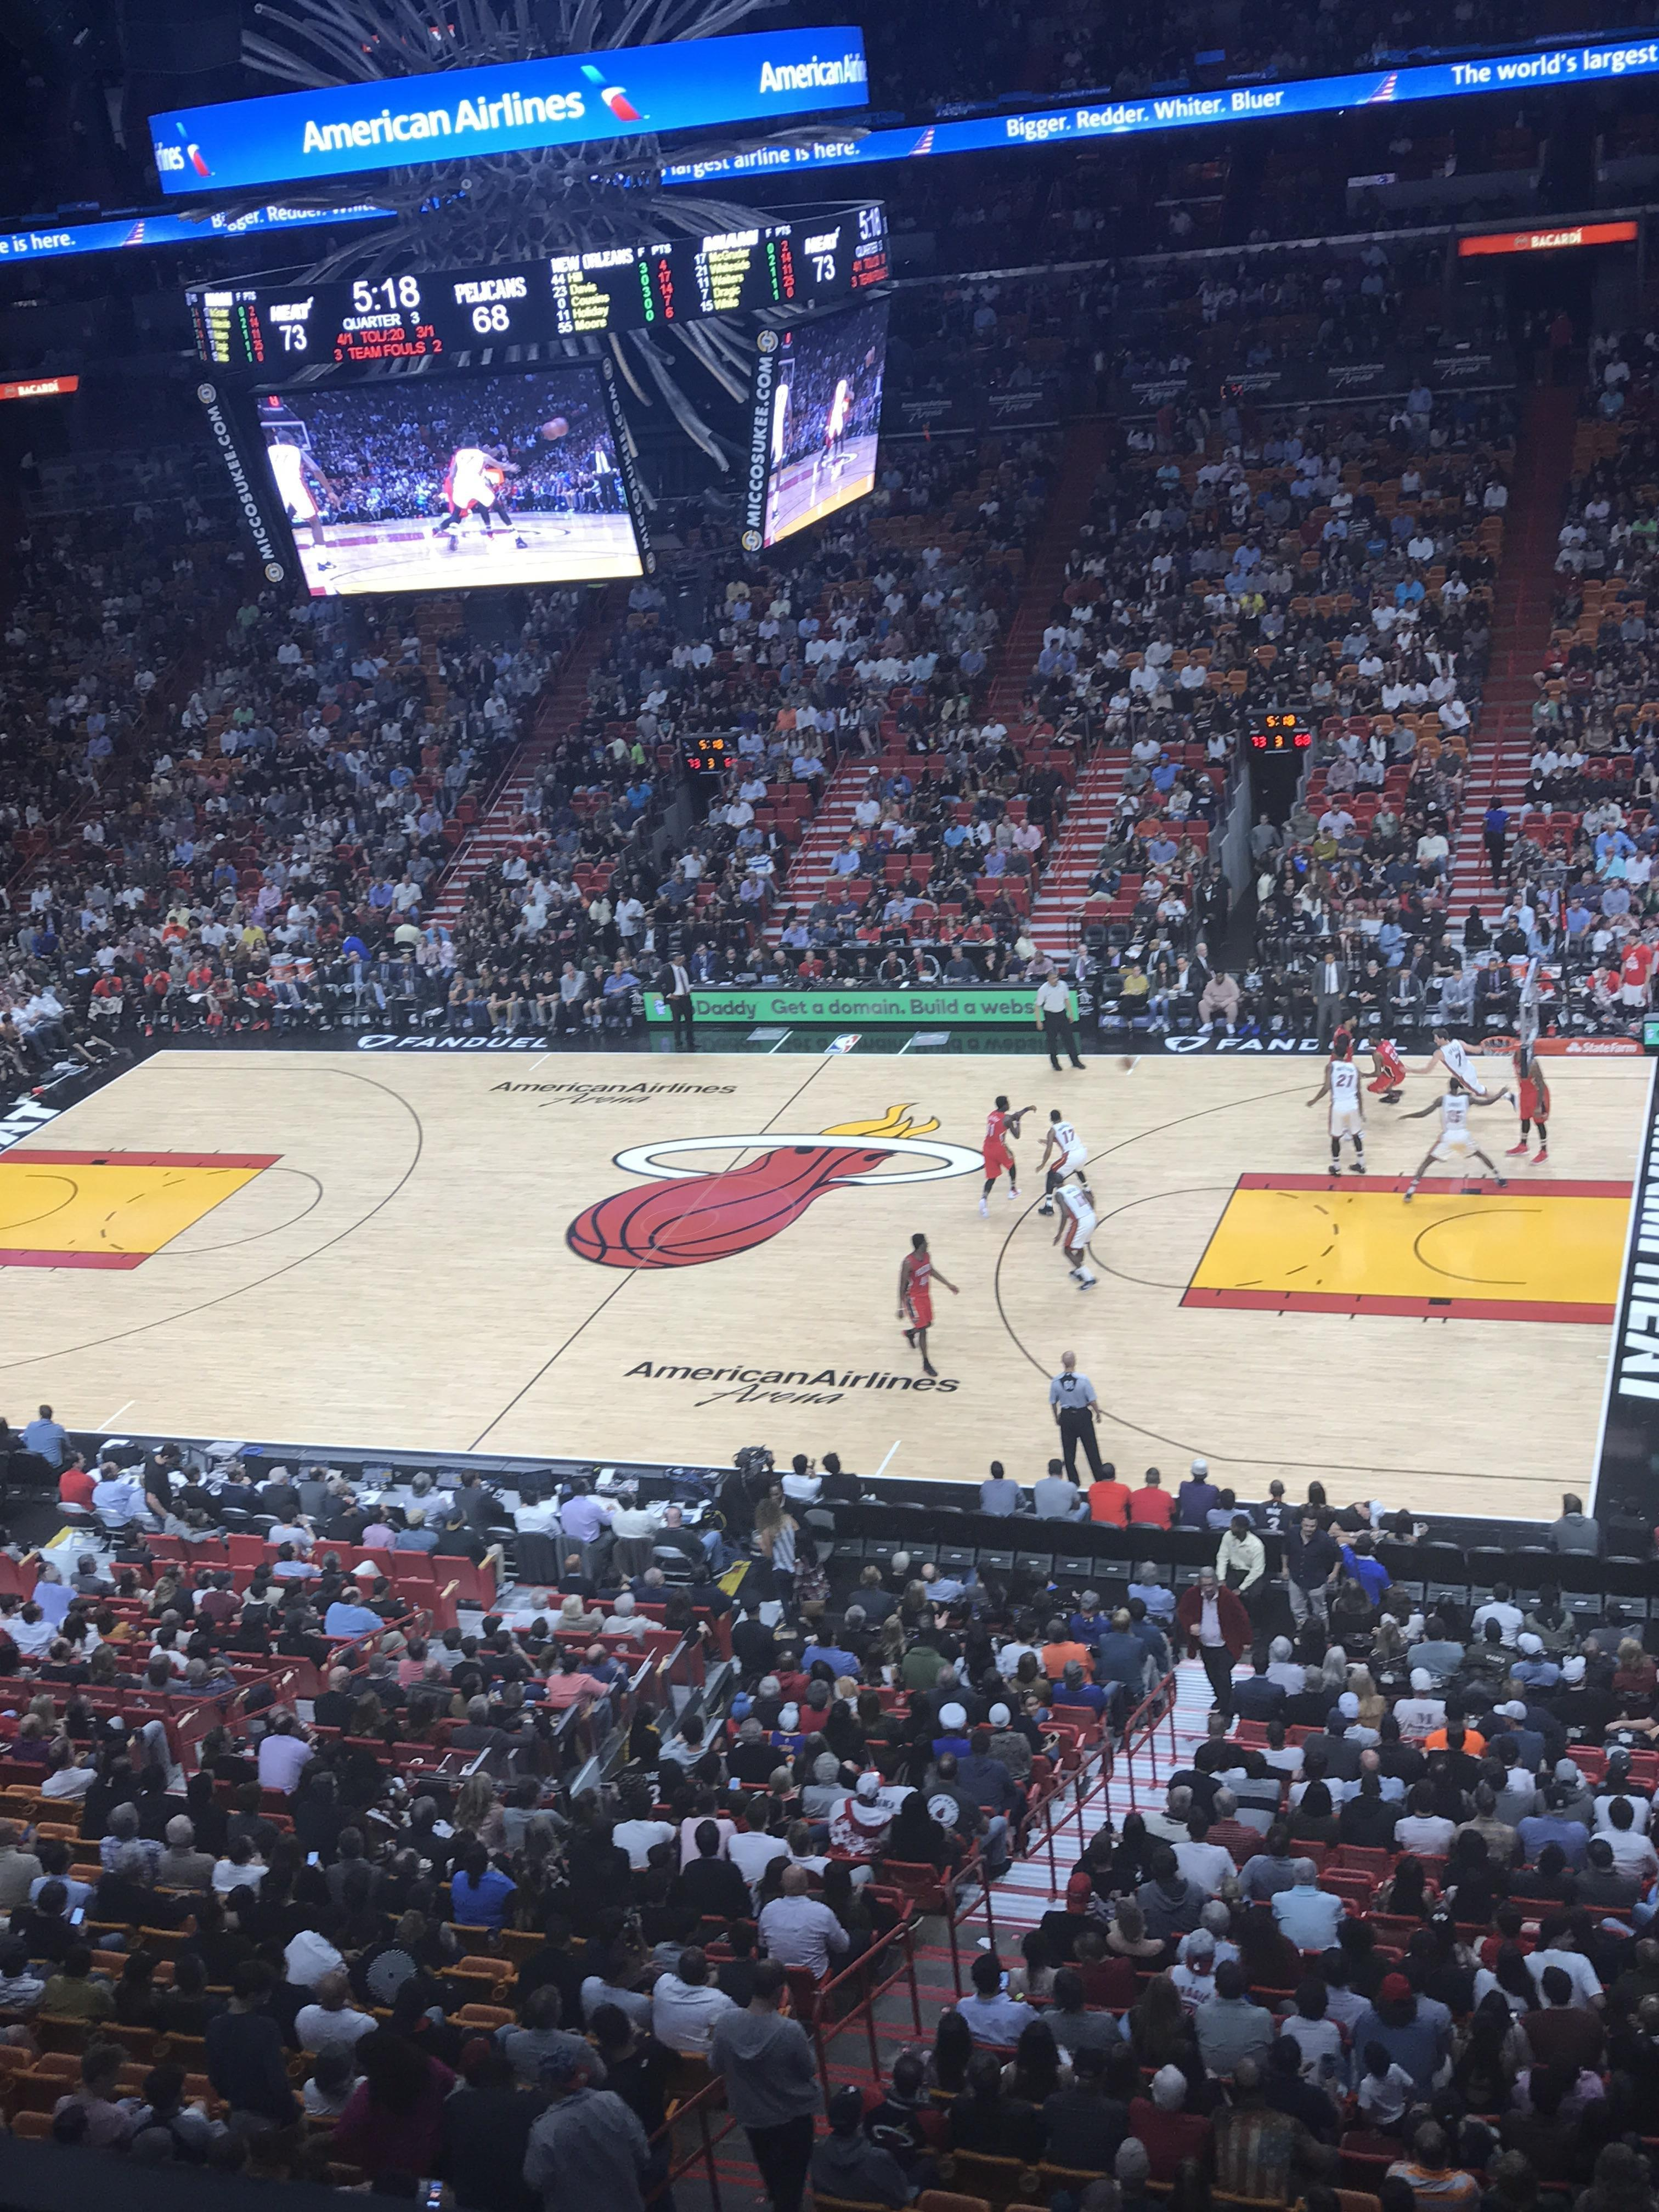 American Airlines Arena Section 323 Row 1 Seat 5